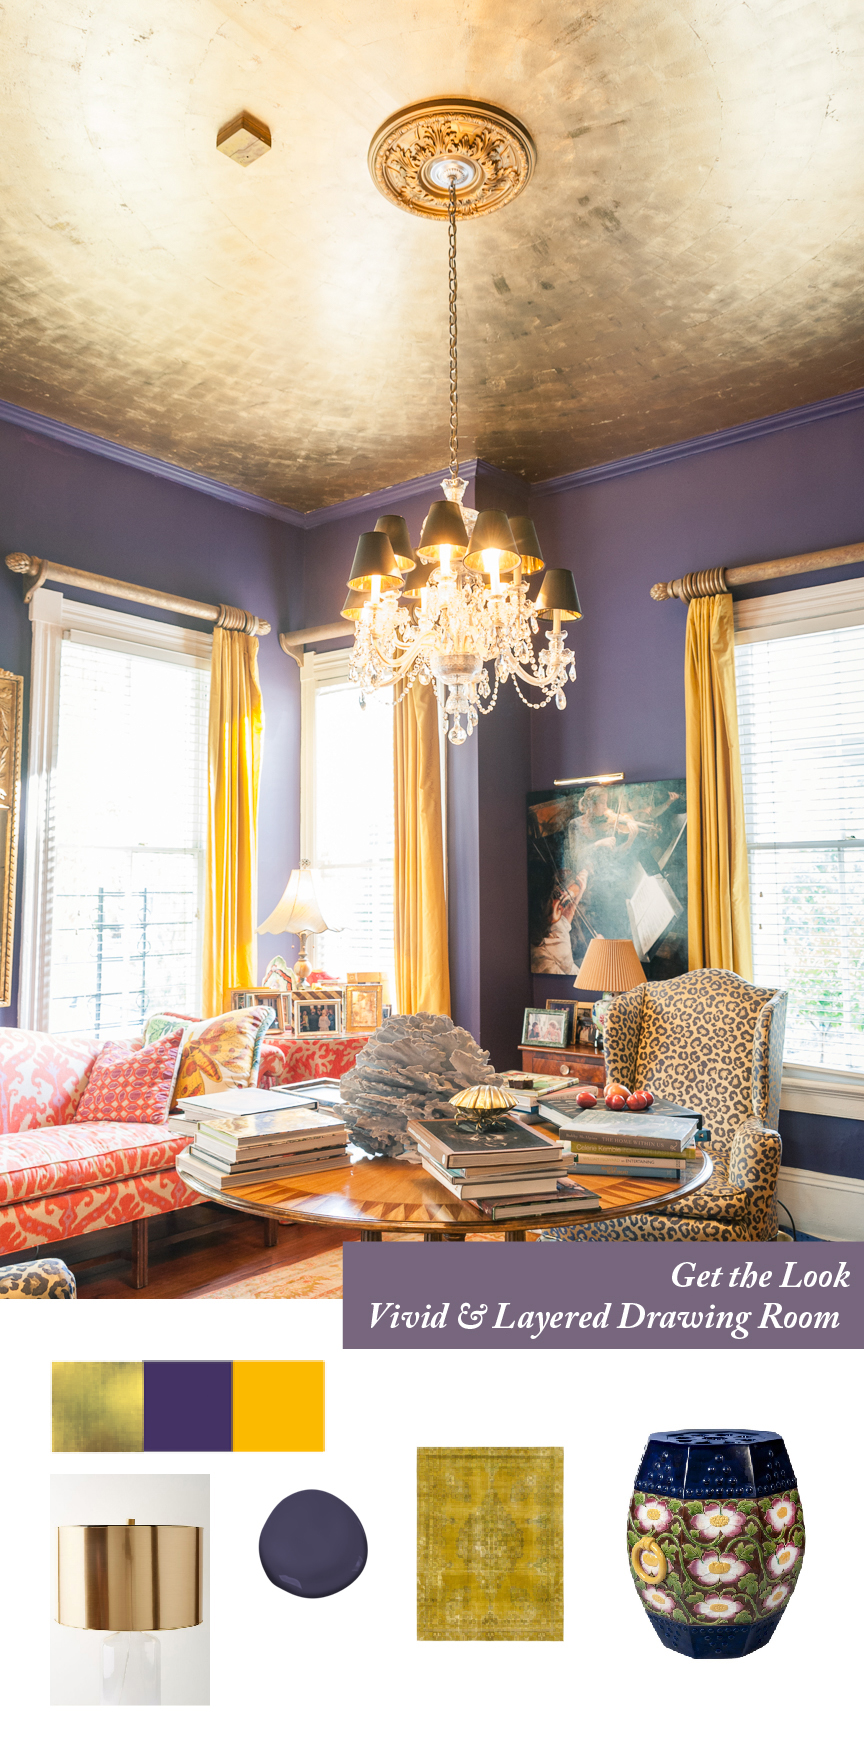 Get the Look | Southern Spring Interiors | Bring on the Color | Color Strategies for Interiors | Susan Mason | Southern Interior | Colorful Home | Colorful Drawing Room | Colorful Living Room | Orange Room | Purple Room | Gold Ceiling | Gold Leaf Ceiling | Southern Home Decor | Colorful Home Decor | Colorful Interior | Paprika Southern